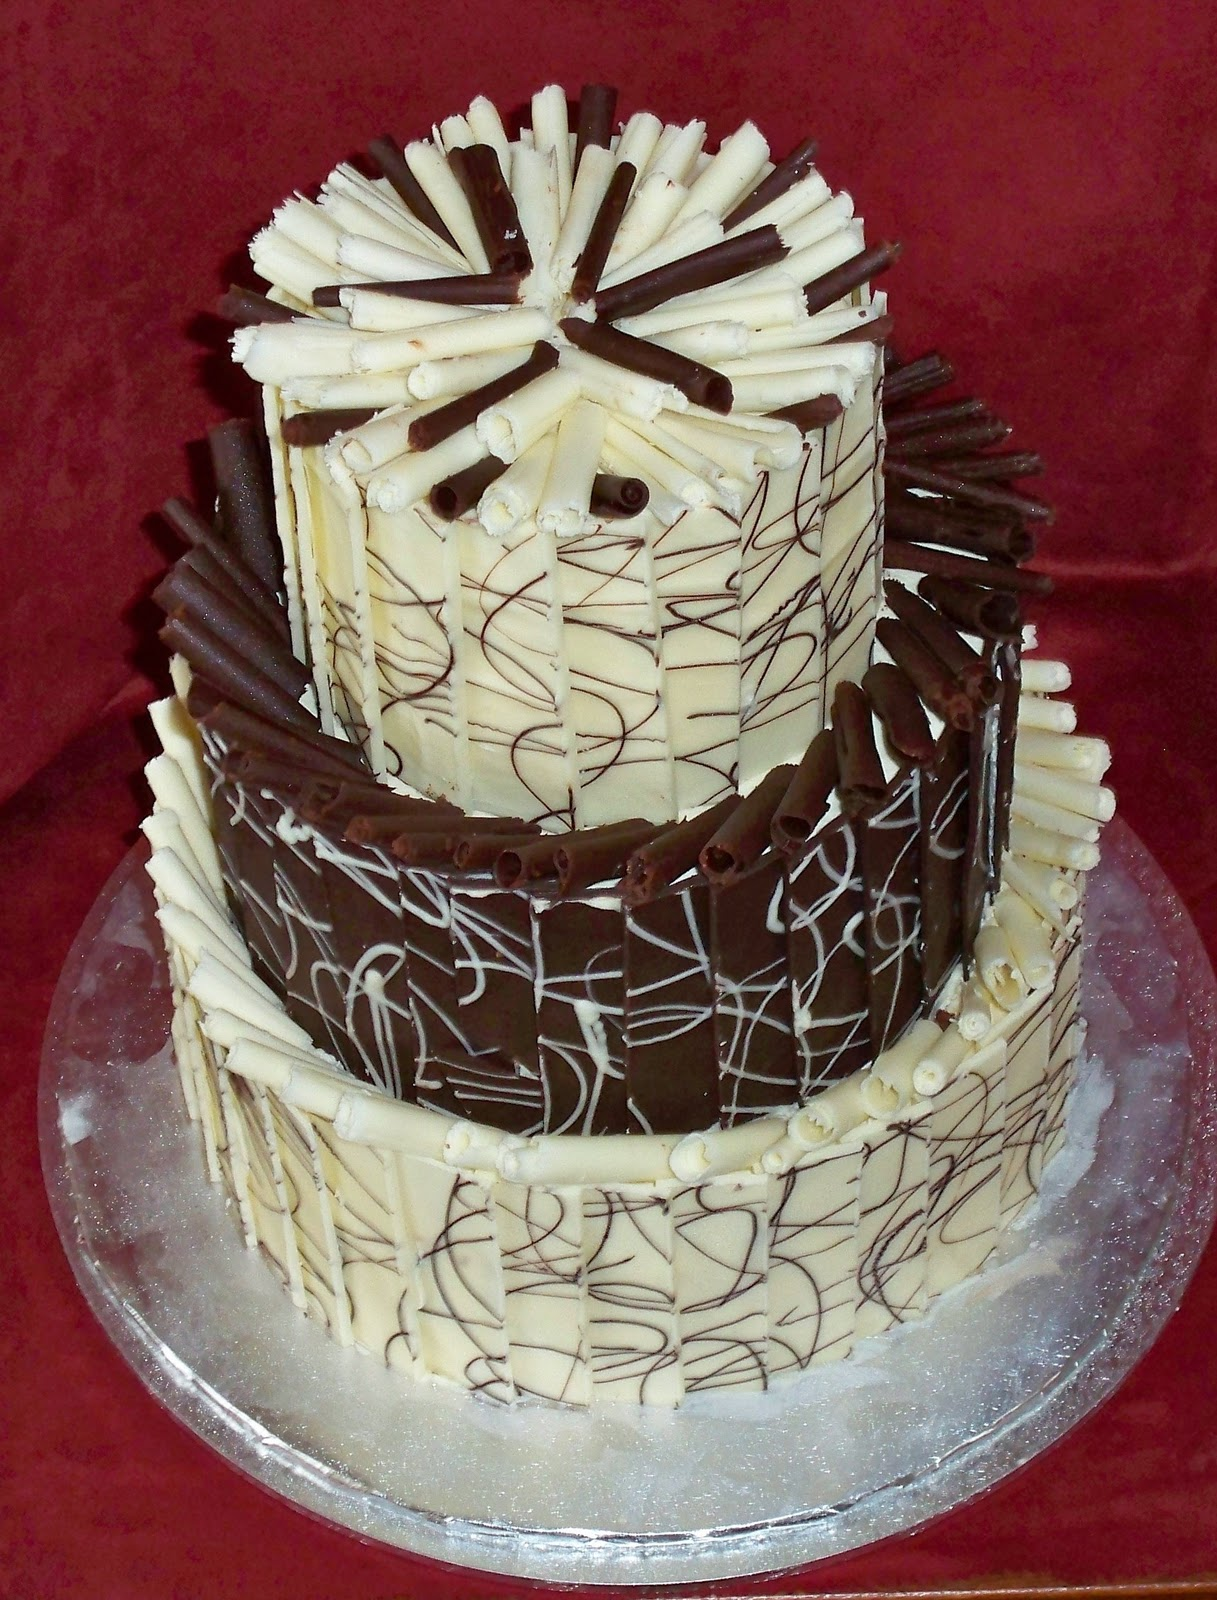 Design Of Chocolate Cake : Milk, White, Dark Chocolate Dreams Elisabeth s Wedding Cakes